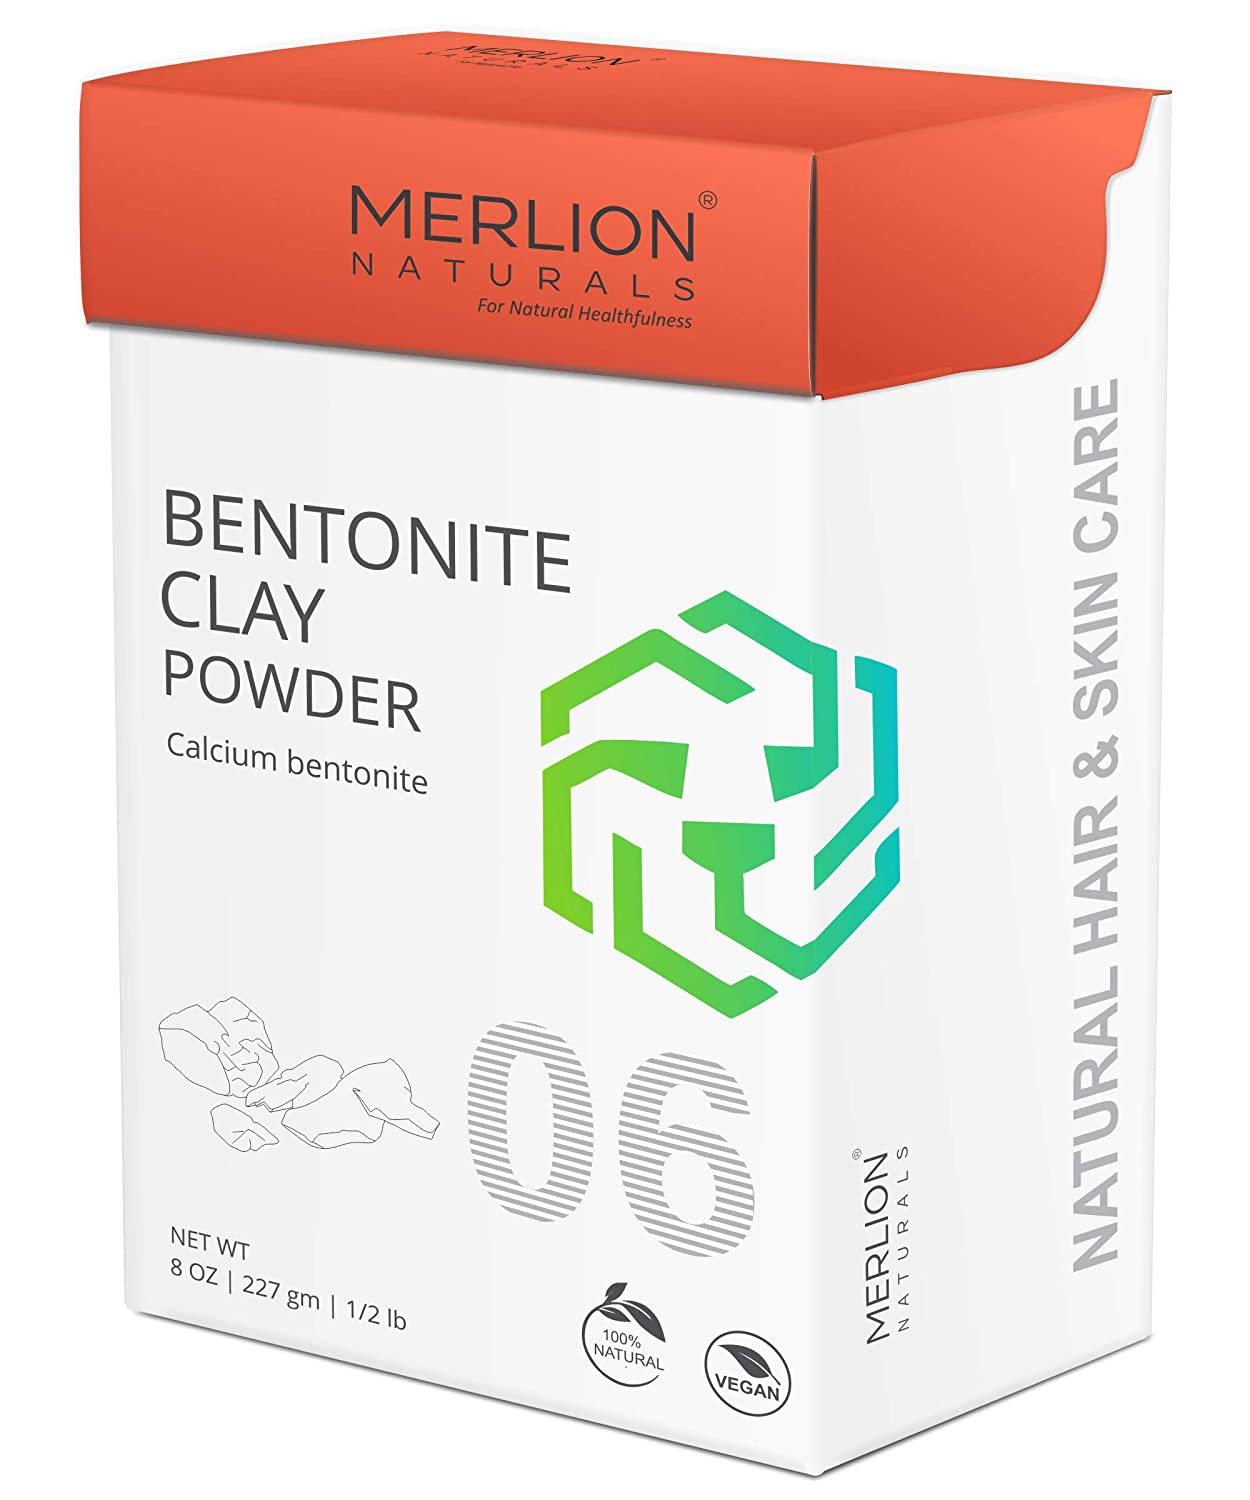 Merlion Naturals Bentonite Clay Powder, Calcium Bentonite